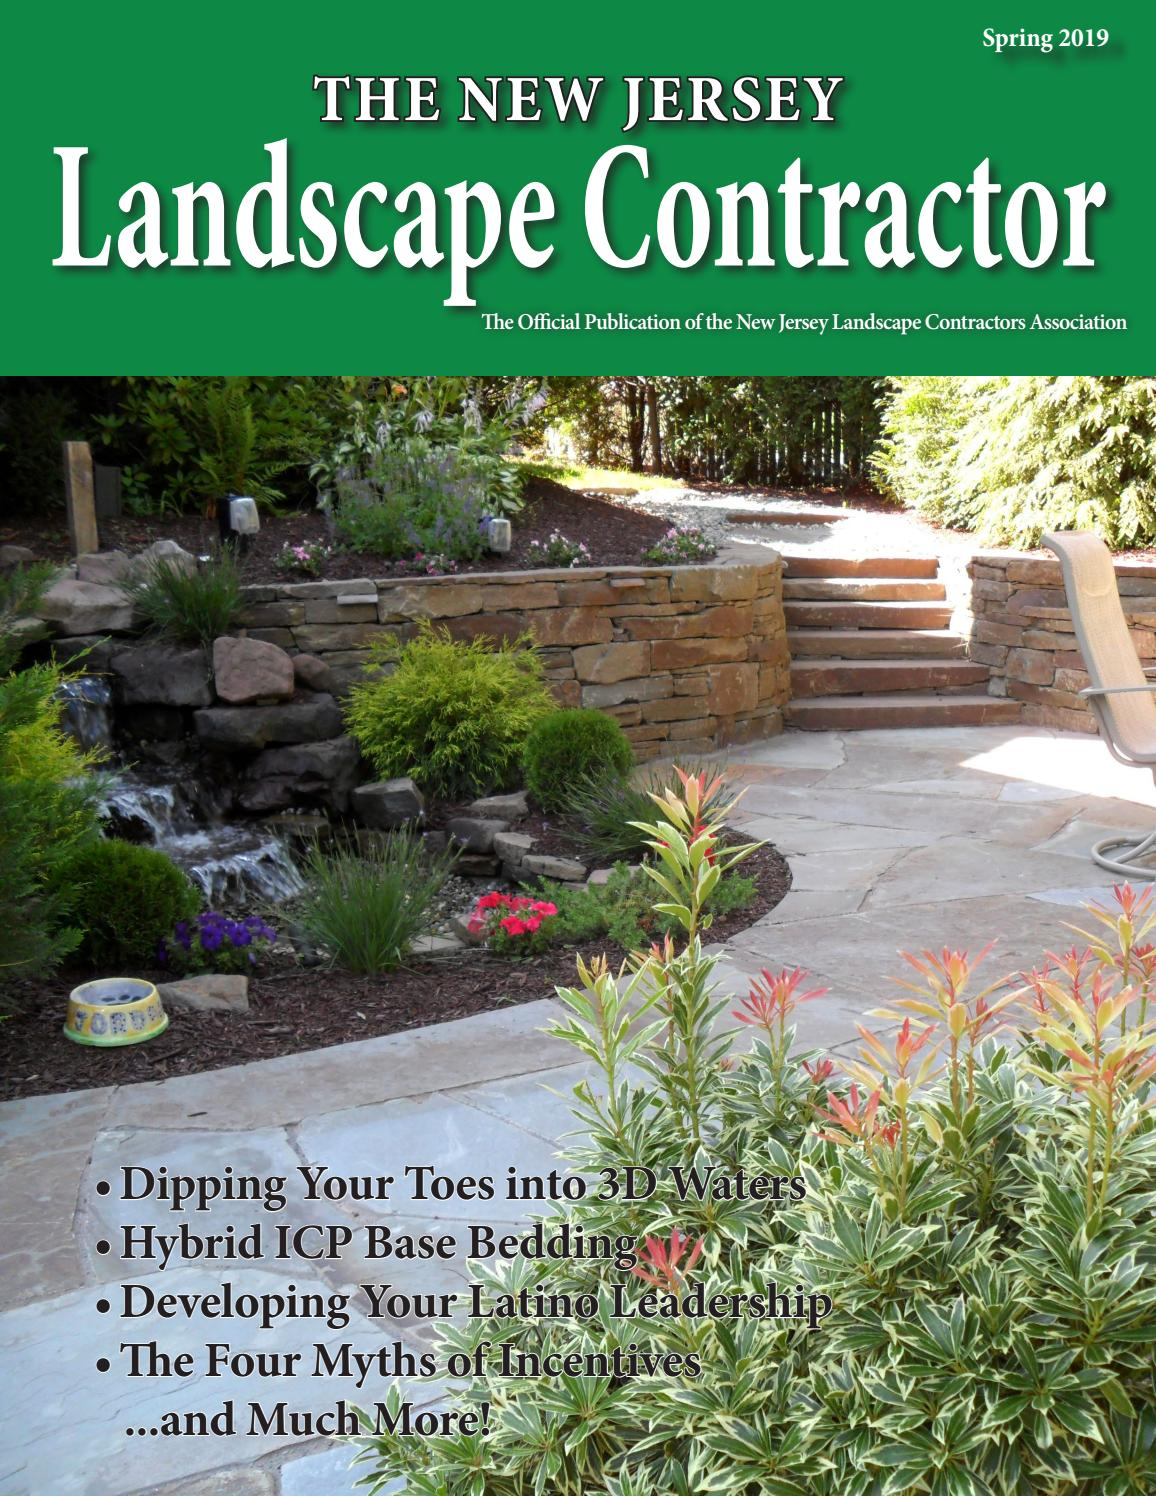 The New Jersey Landscape Contractor Spring 2019 By Gail Woolcott